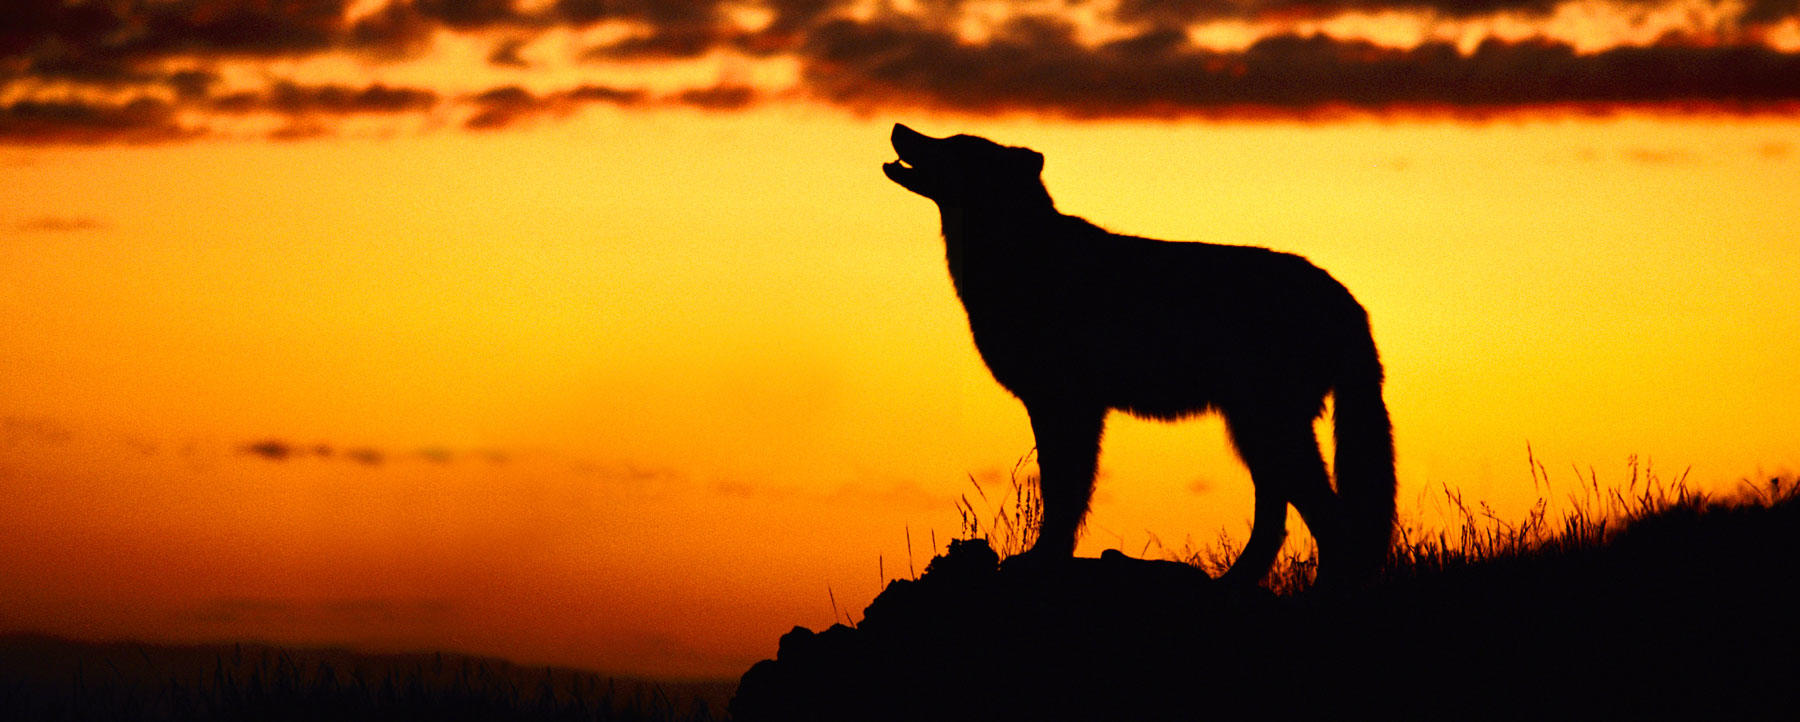 Howling wolf at sunset